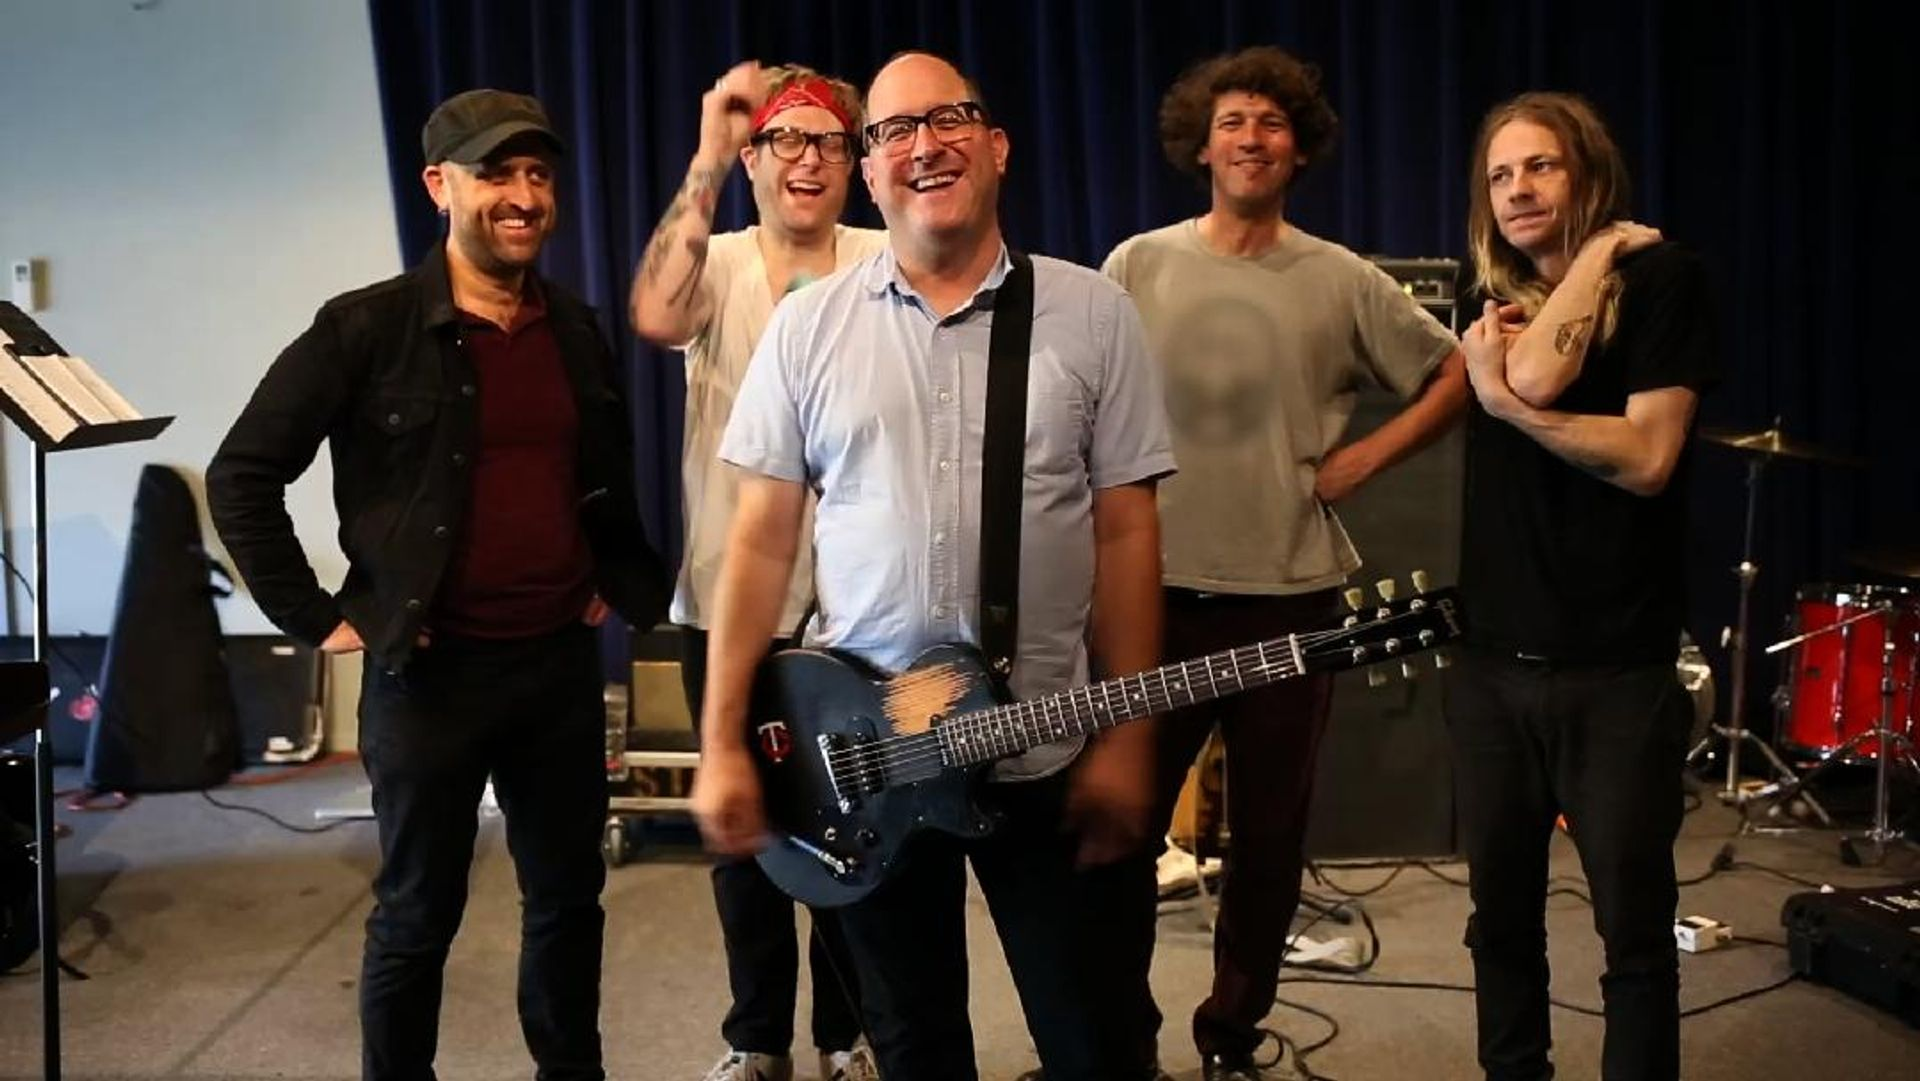 The Hold Steady: Behind The Scenes